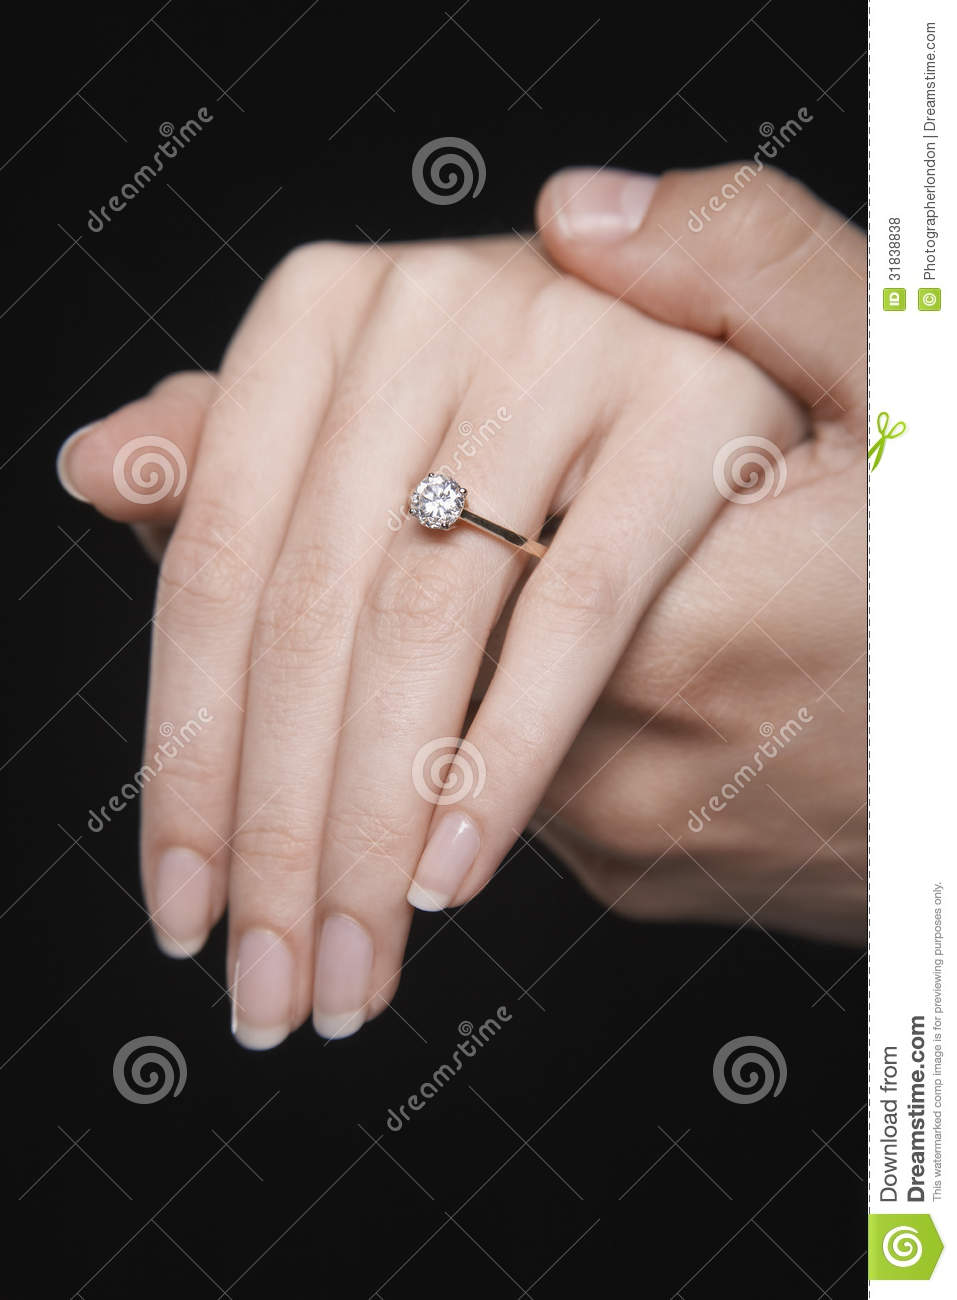 Hands Together With Woman\'s Engagement Ring Stock Photo - Image of ...